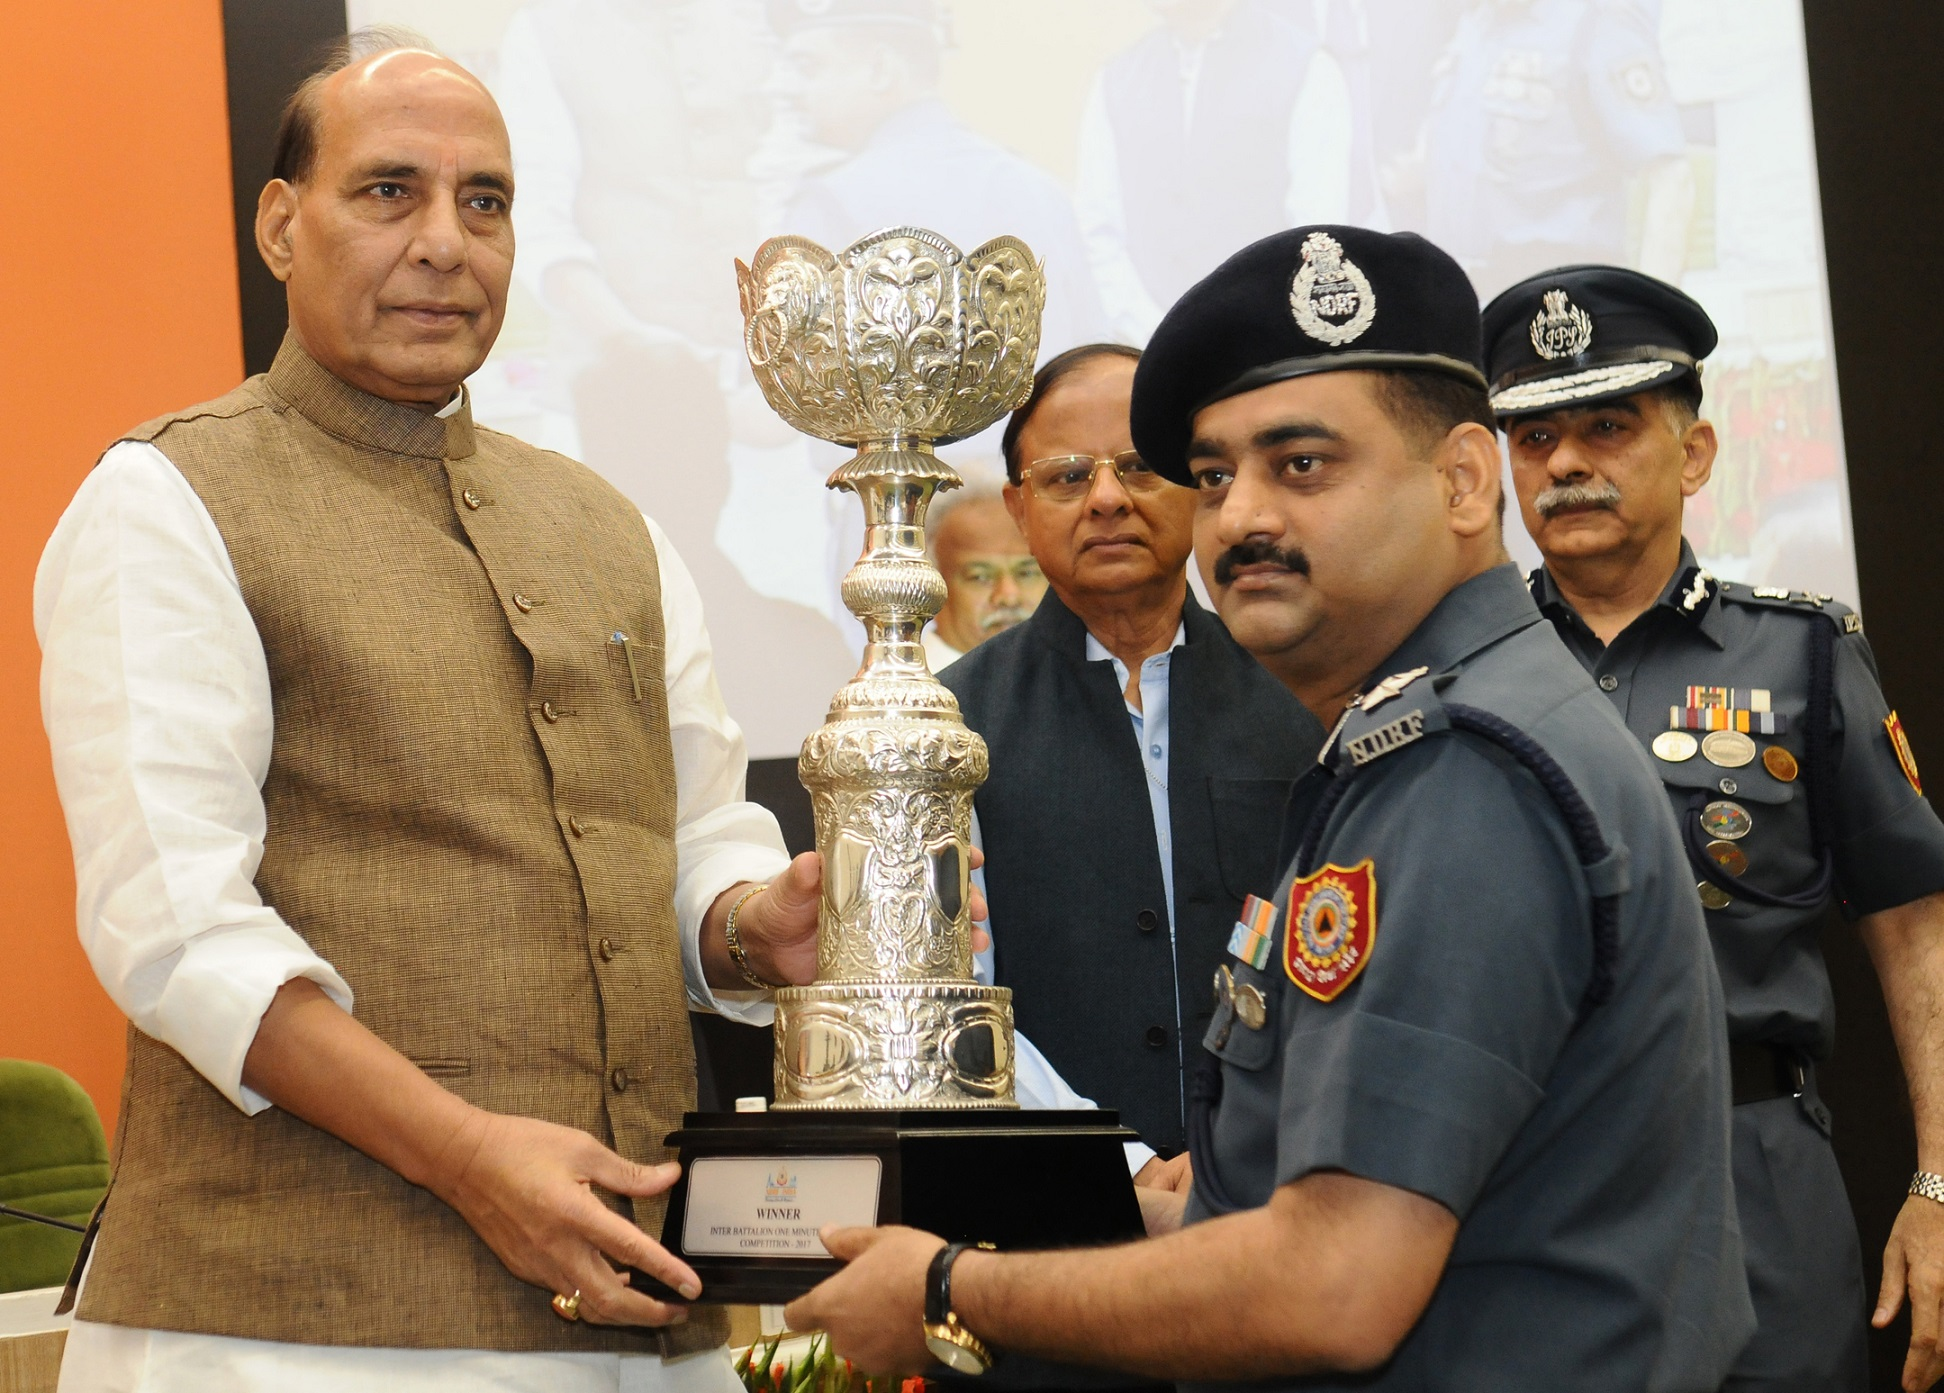 """The Union Home Minister, Shri Rajnath Singh distributing award of trophies to the winners of NDRF Inter Battalions Professional competition, at the inauguration of the National Level Conference on """"Capacity Building of SDRFs-2017"""", organised by the NDRF, in New Delhi on June 06, 2017. The Additional Principal Secretary to the Prime Minister, Dr. P.K. Mishra and the DG, NDRF, Shri R.K. Pachnanda are also seen."""